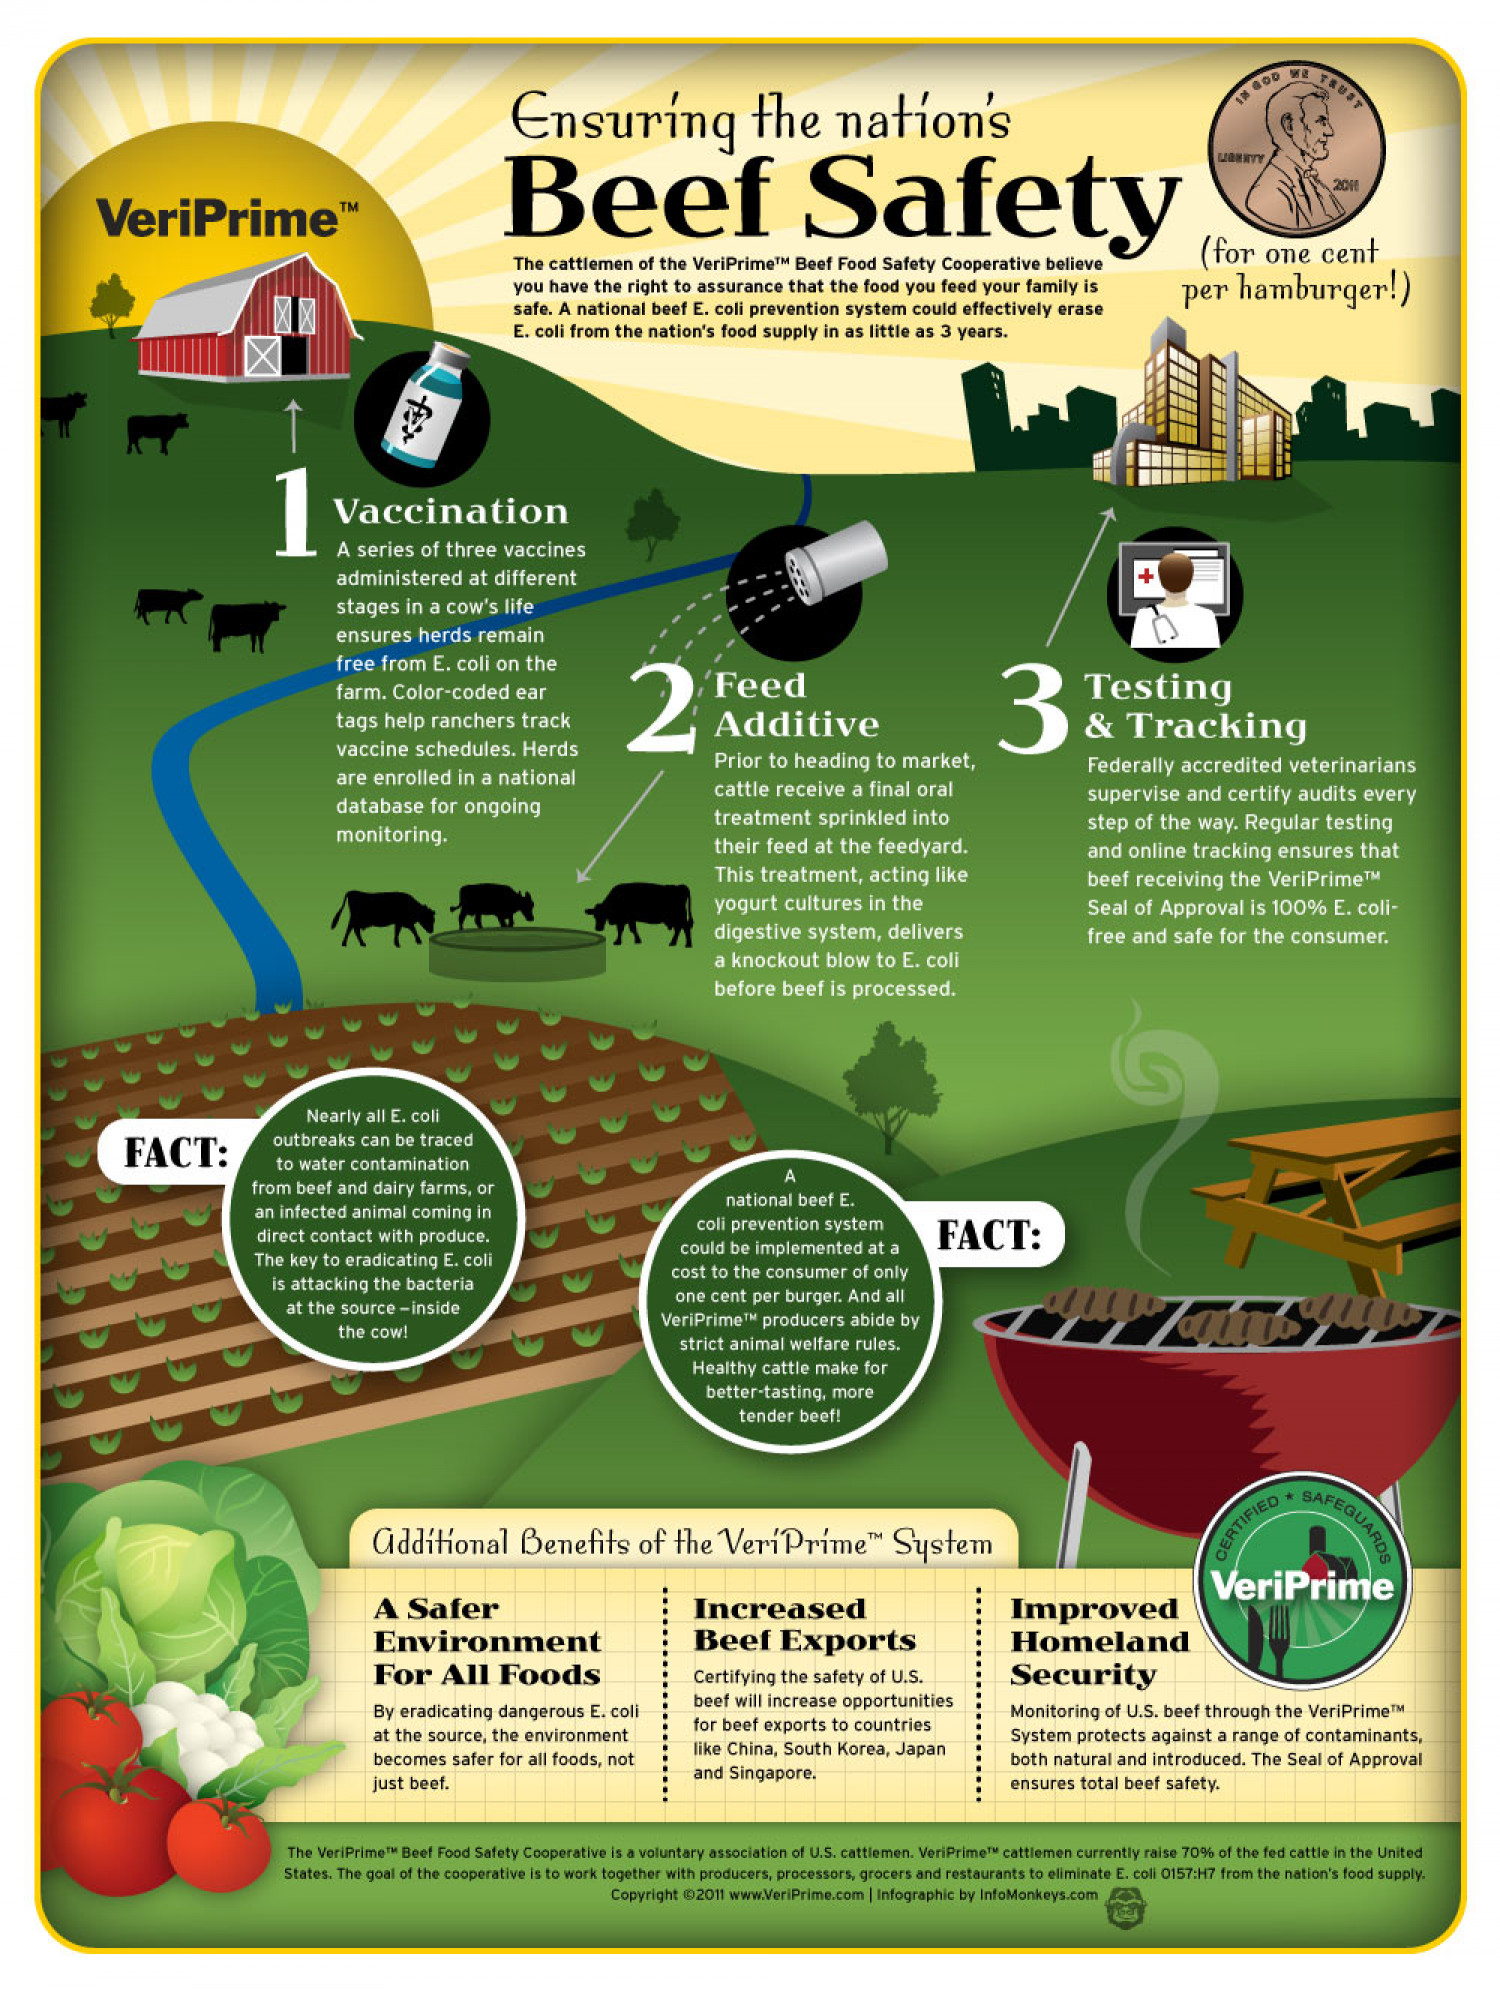 Beef Safety Infographic